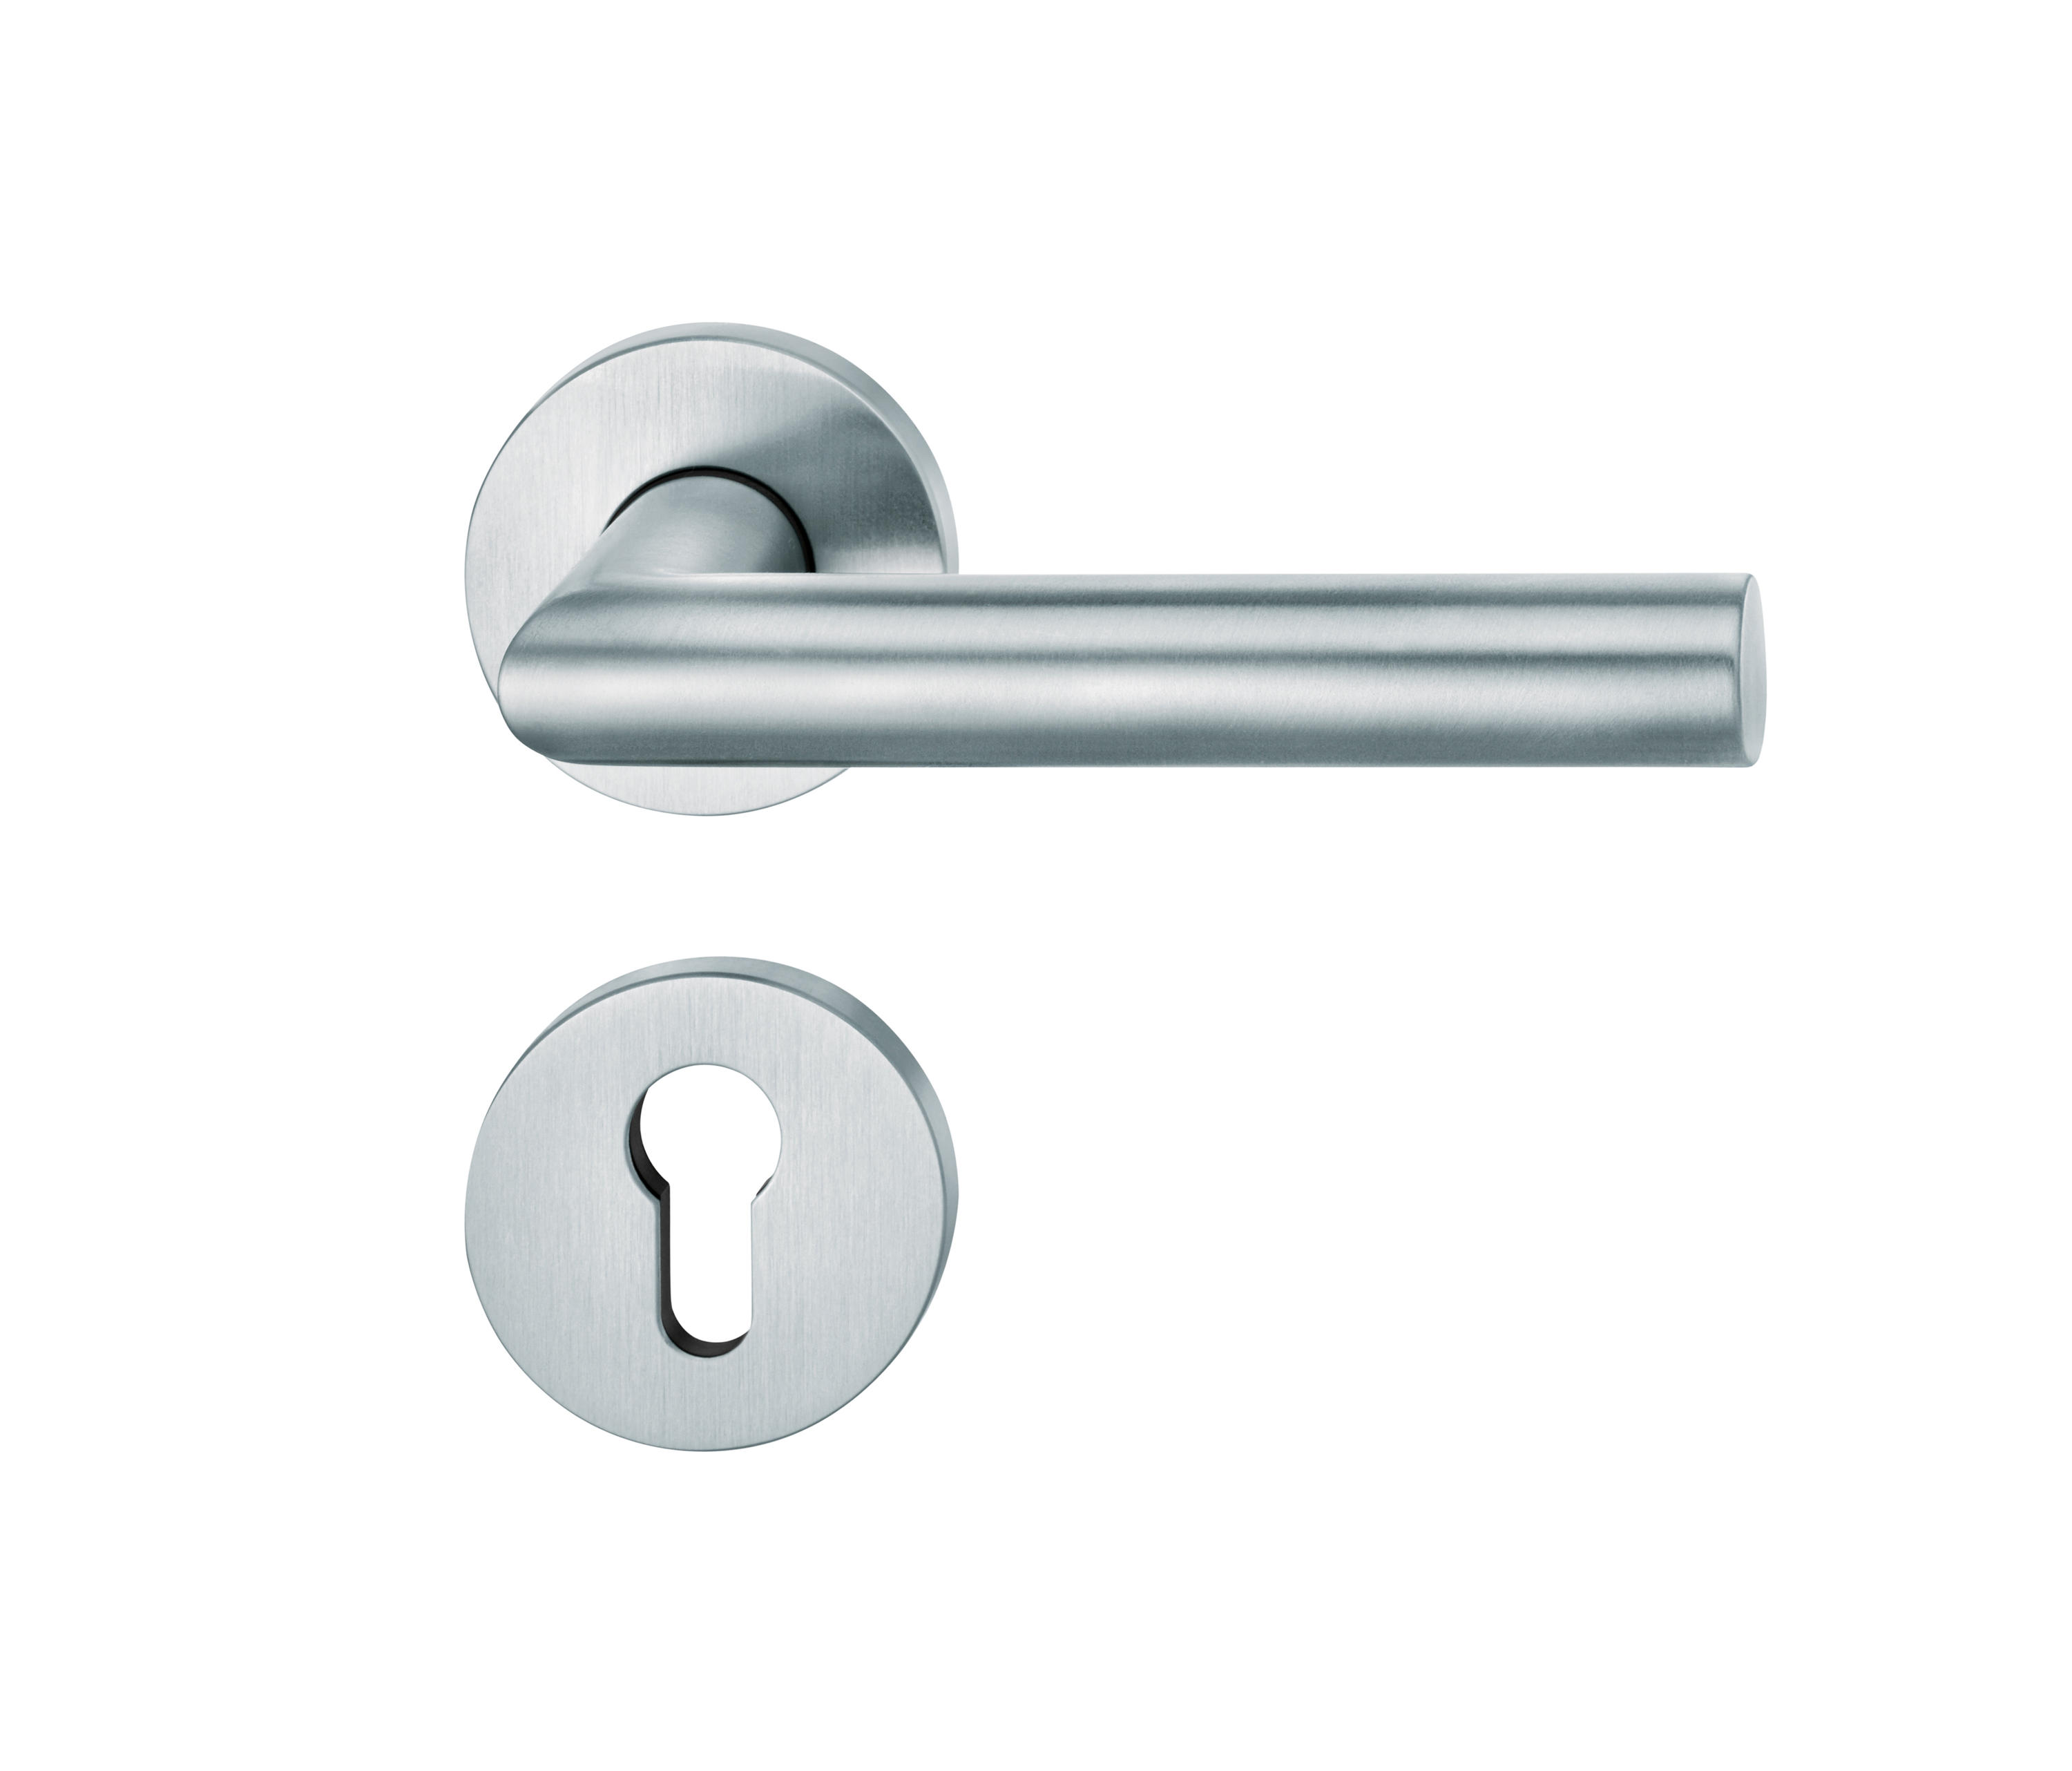 Fsb 1076 door set handle sets from fsb architonic for 1076 door contact